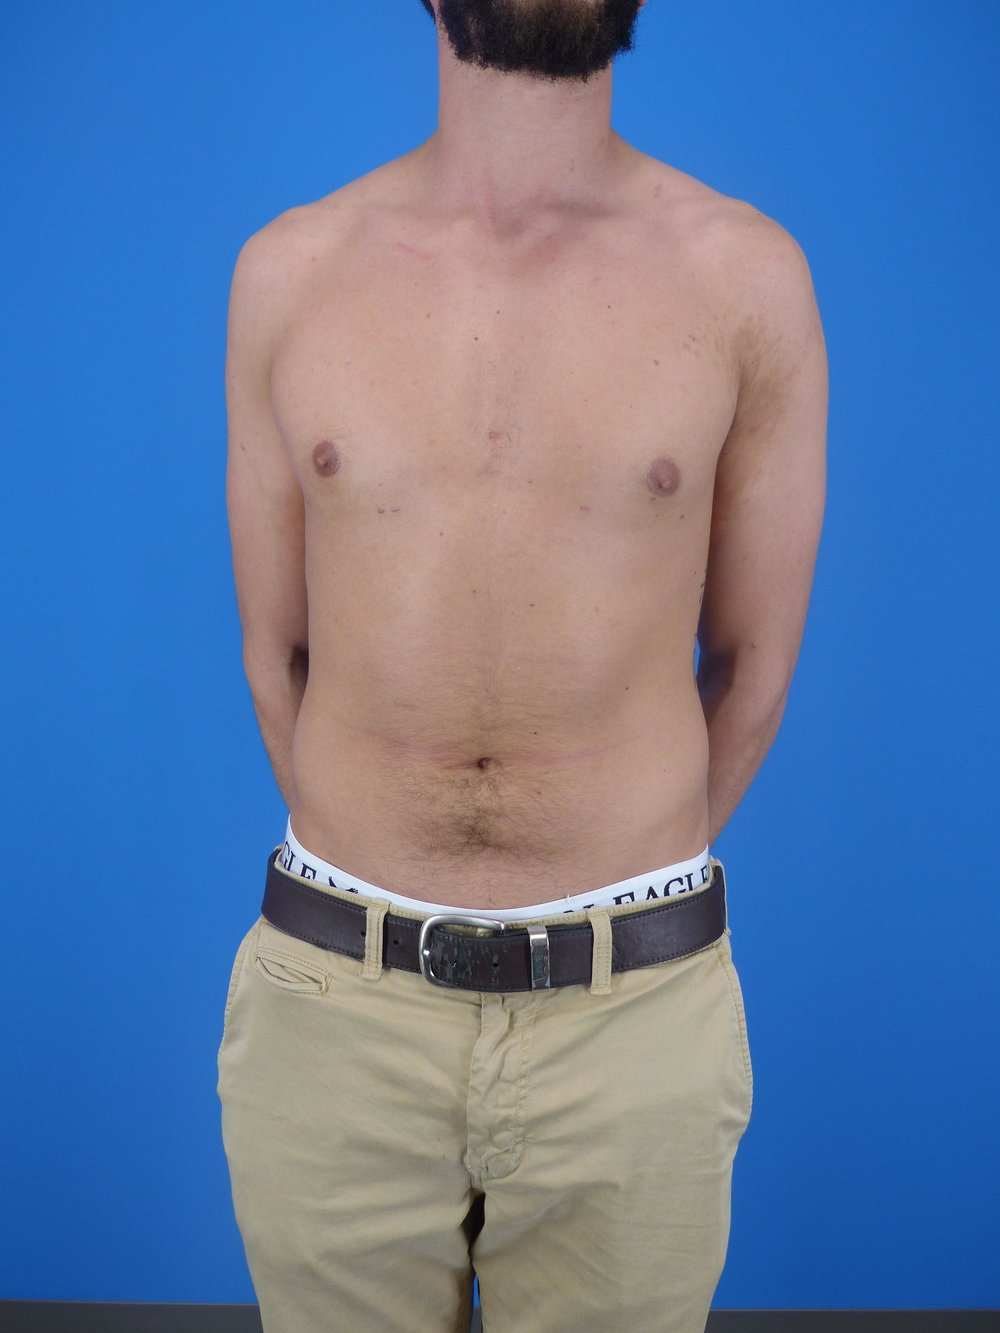 gynecomastia-before-and-after.jpg